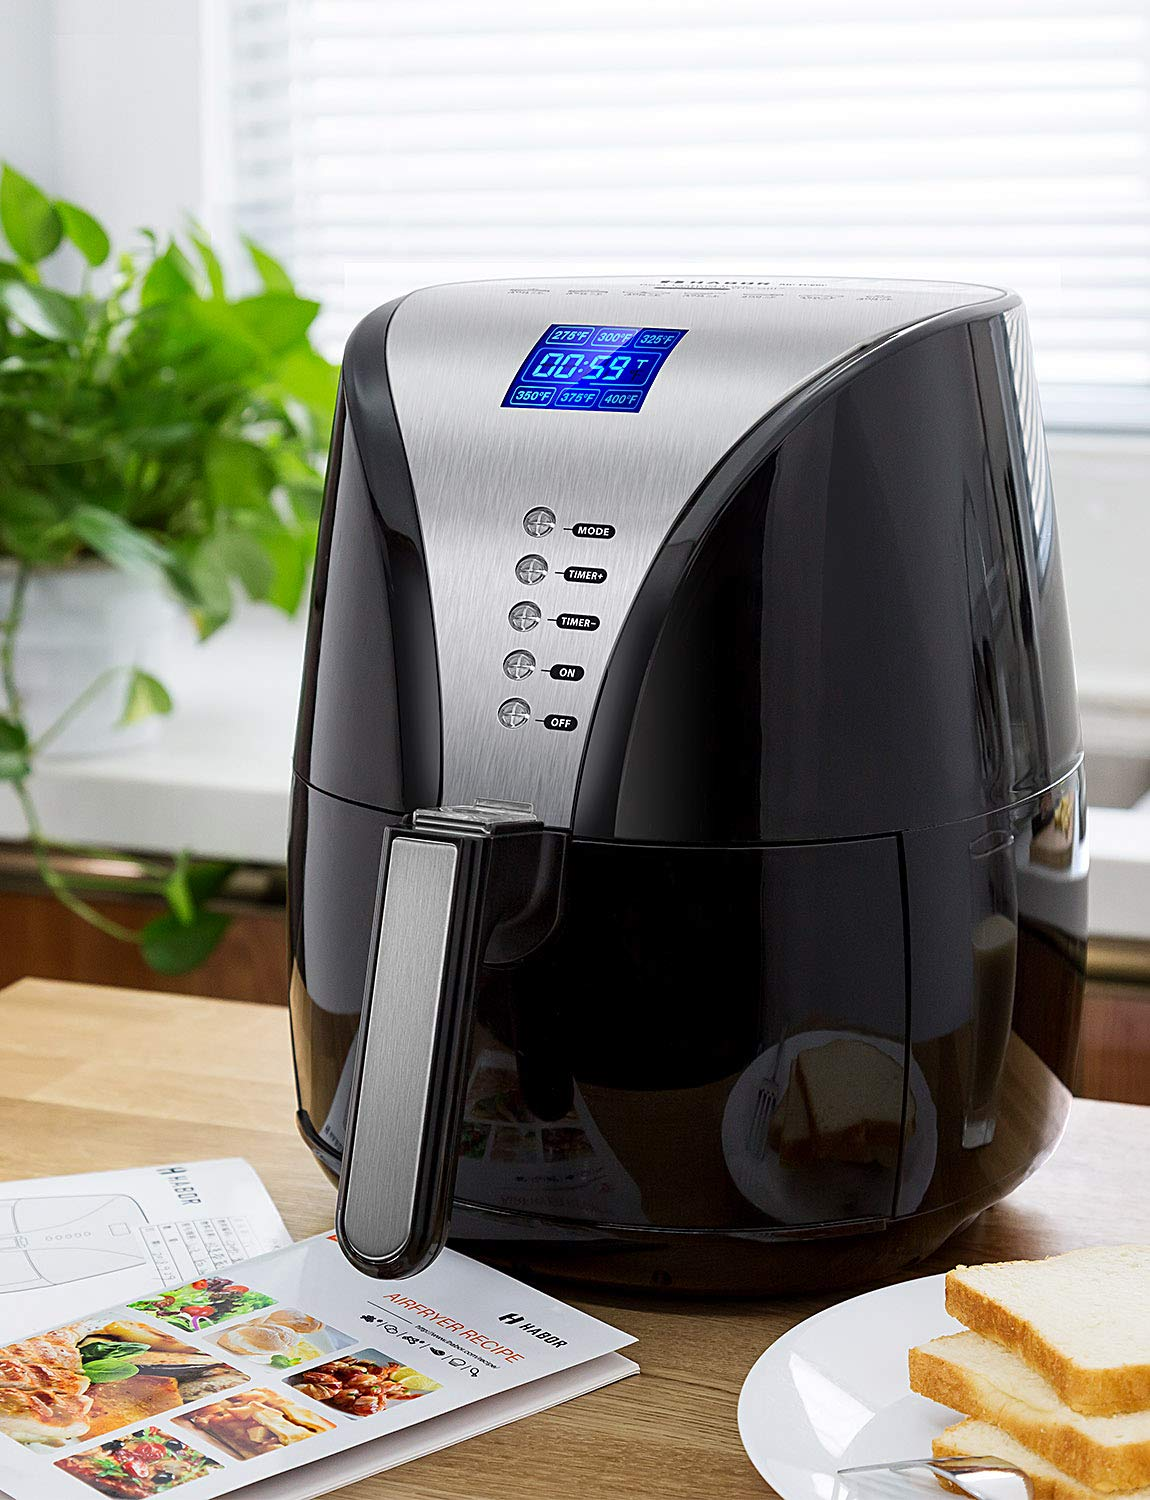 Habor Air Fryer